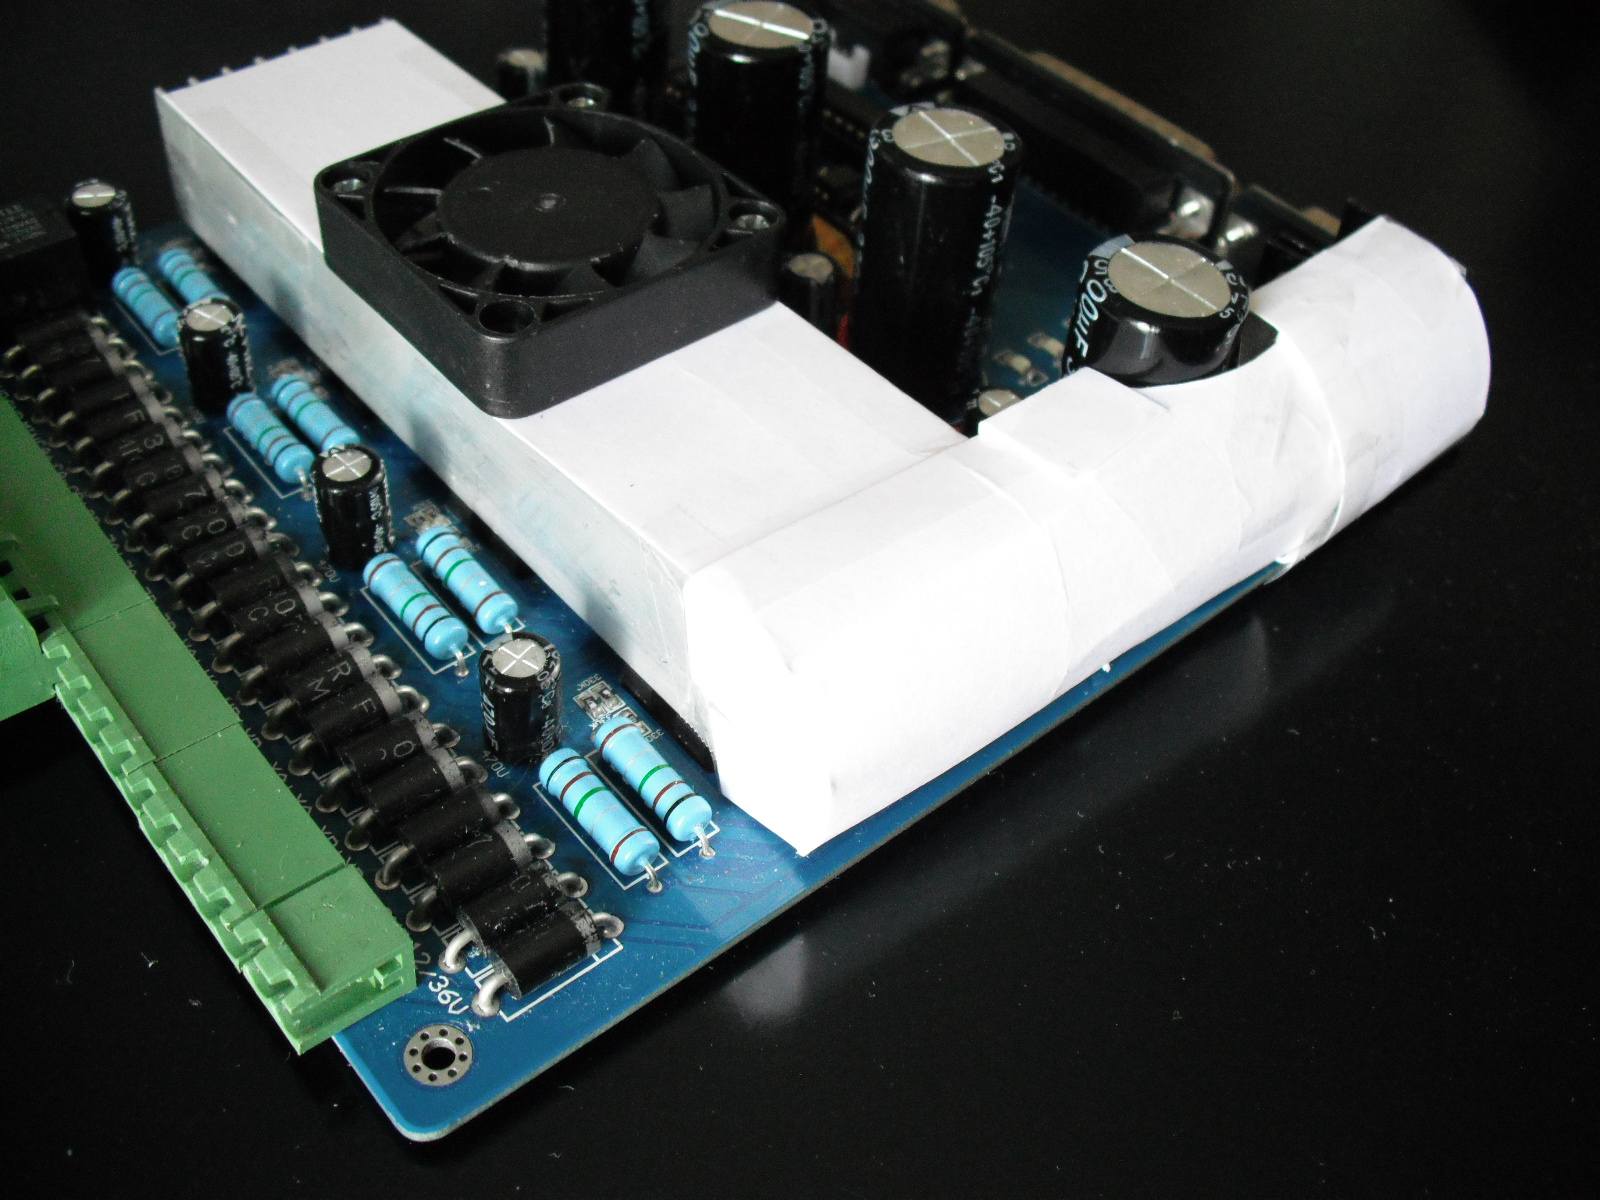 Tb6560ahq Driver Board Fan Speed Control Electronic Tips Hints 7812 Regulator Circuit Air Flow Duct To The 7805 And Regulators